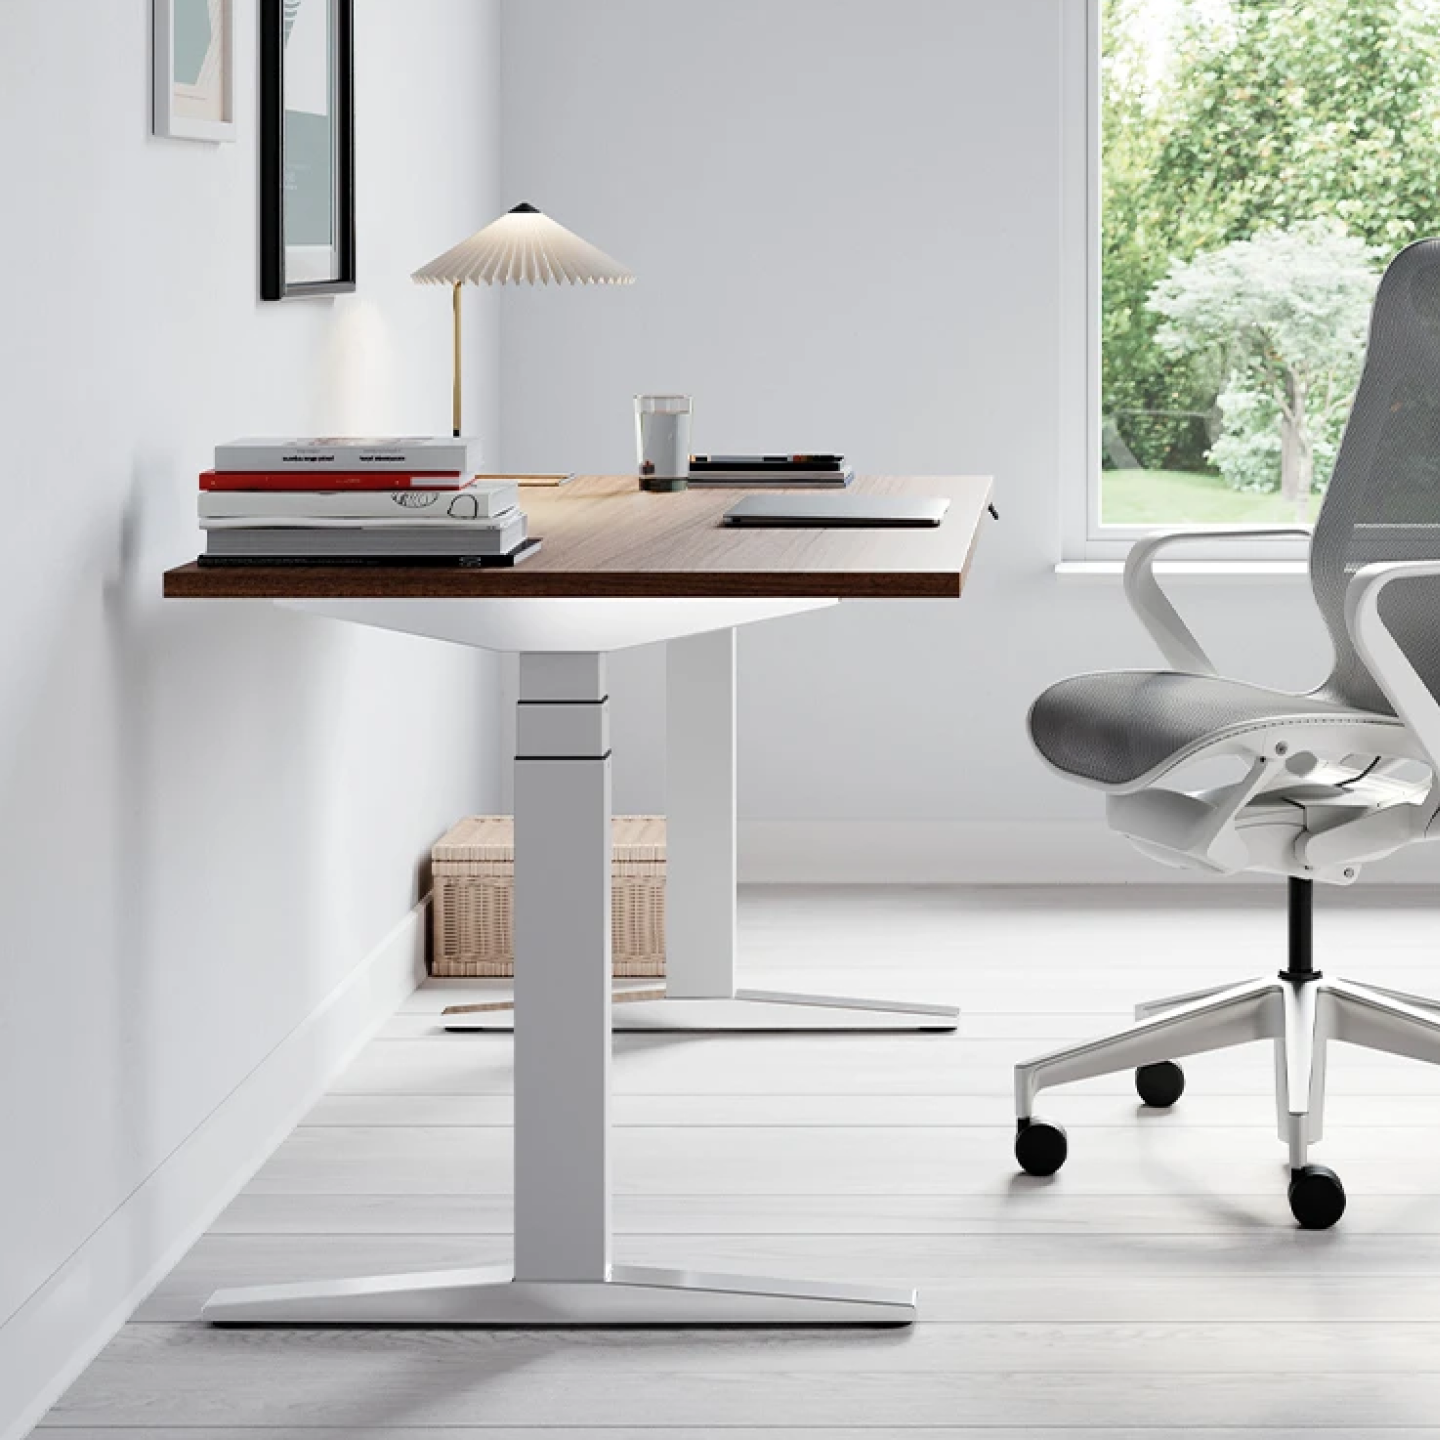 Chalk White and Walnut Ratio Desk with a Mineral Mid Back Cosm Chair in a home office environment